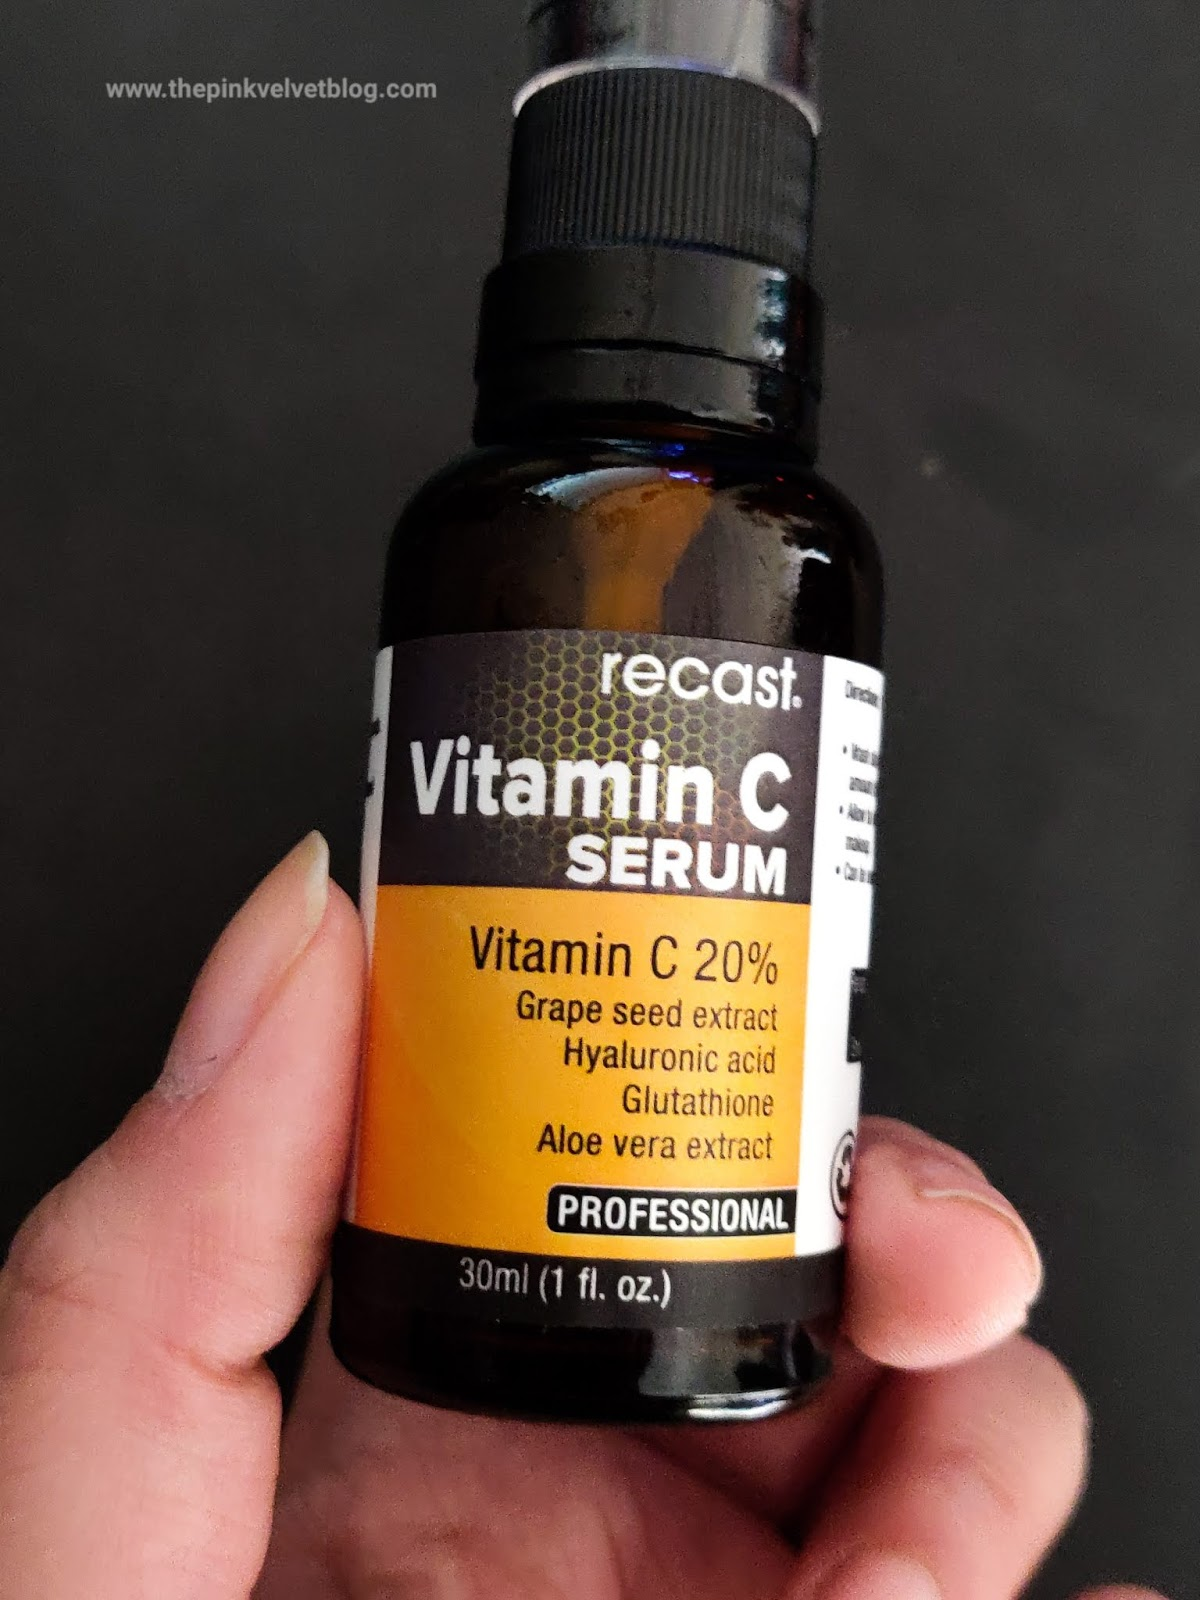 Recast Vitamin-C Face Serum with Hyaluronic Acid - Review